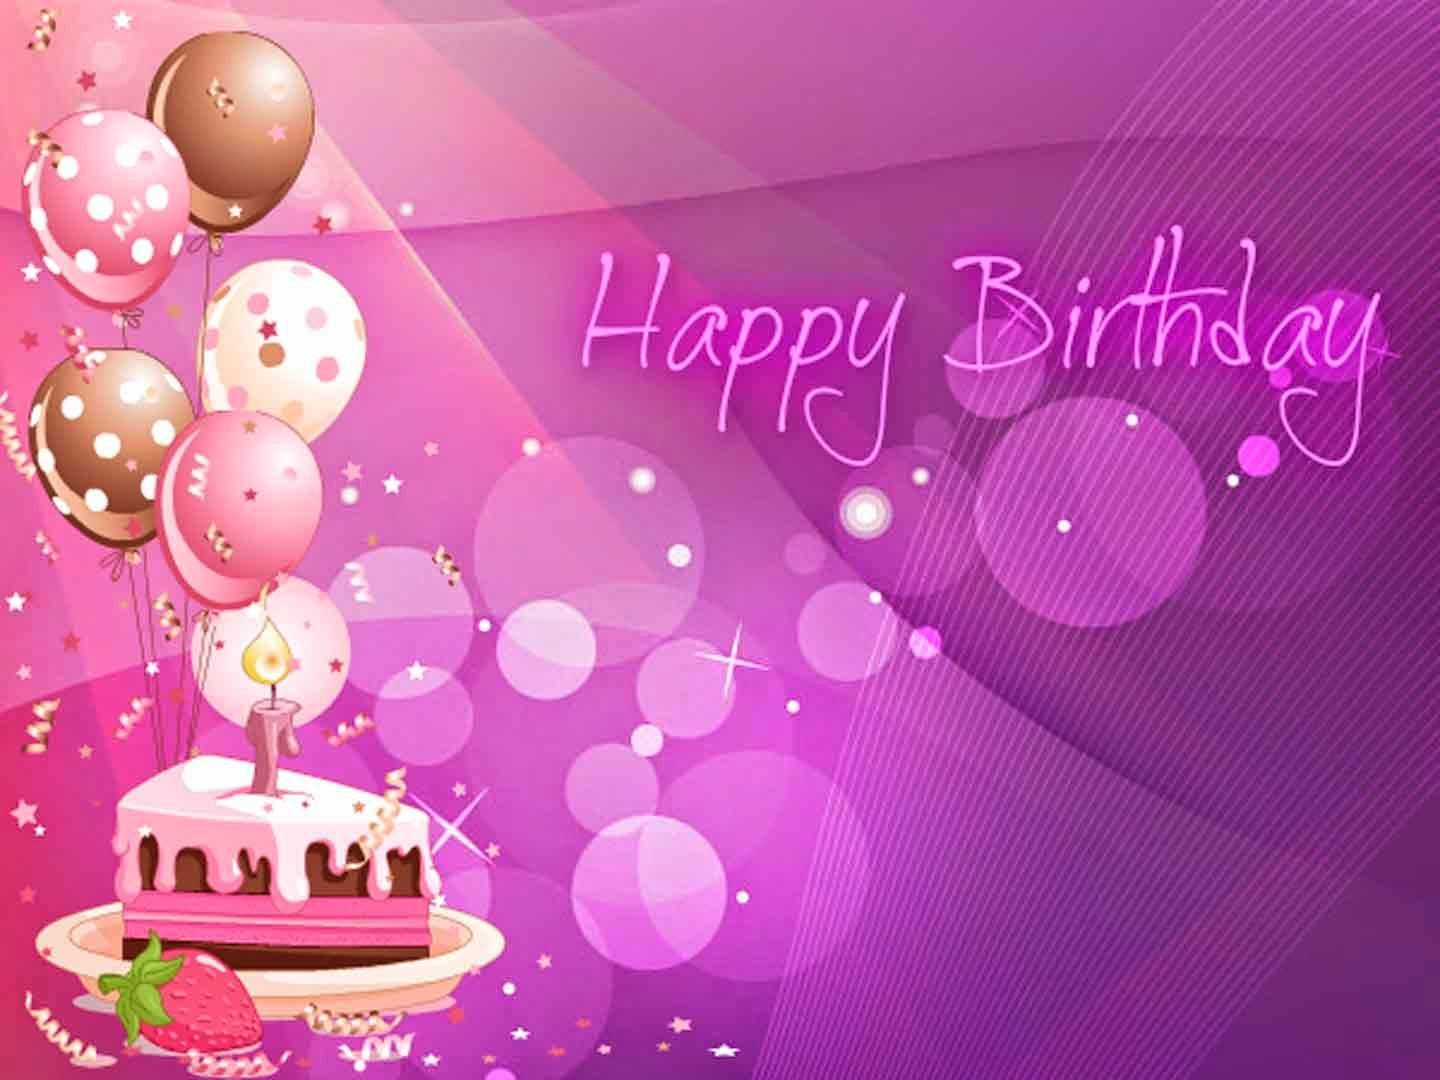 Happy Birthday Wallpapers Download High Definition 1440x1080